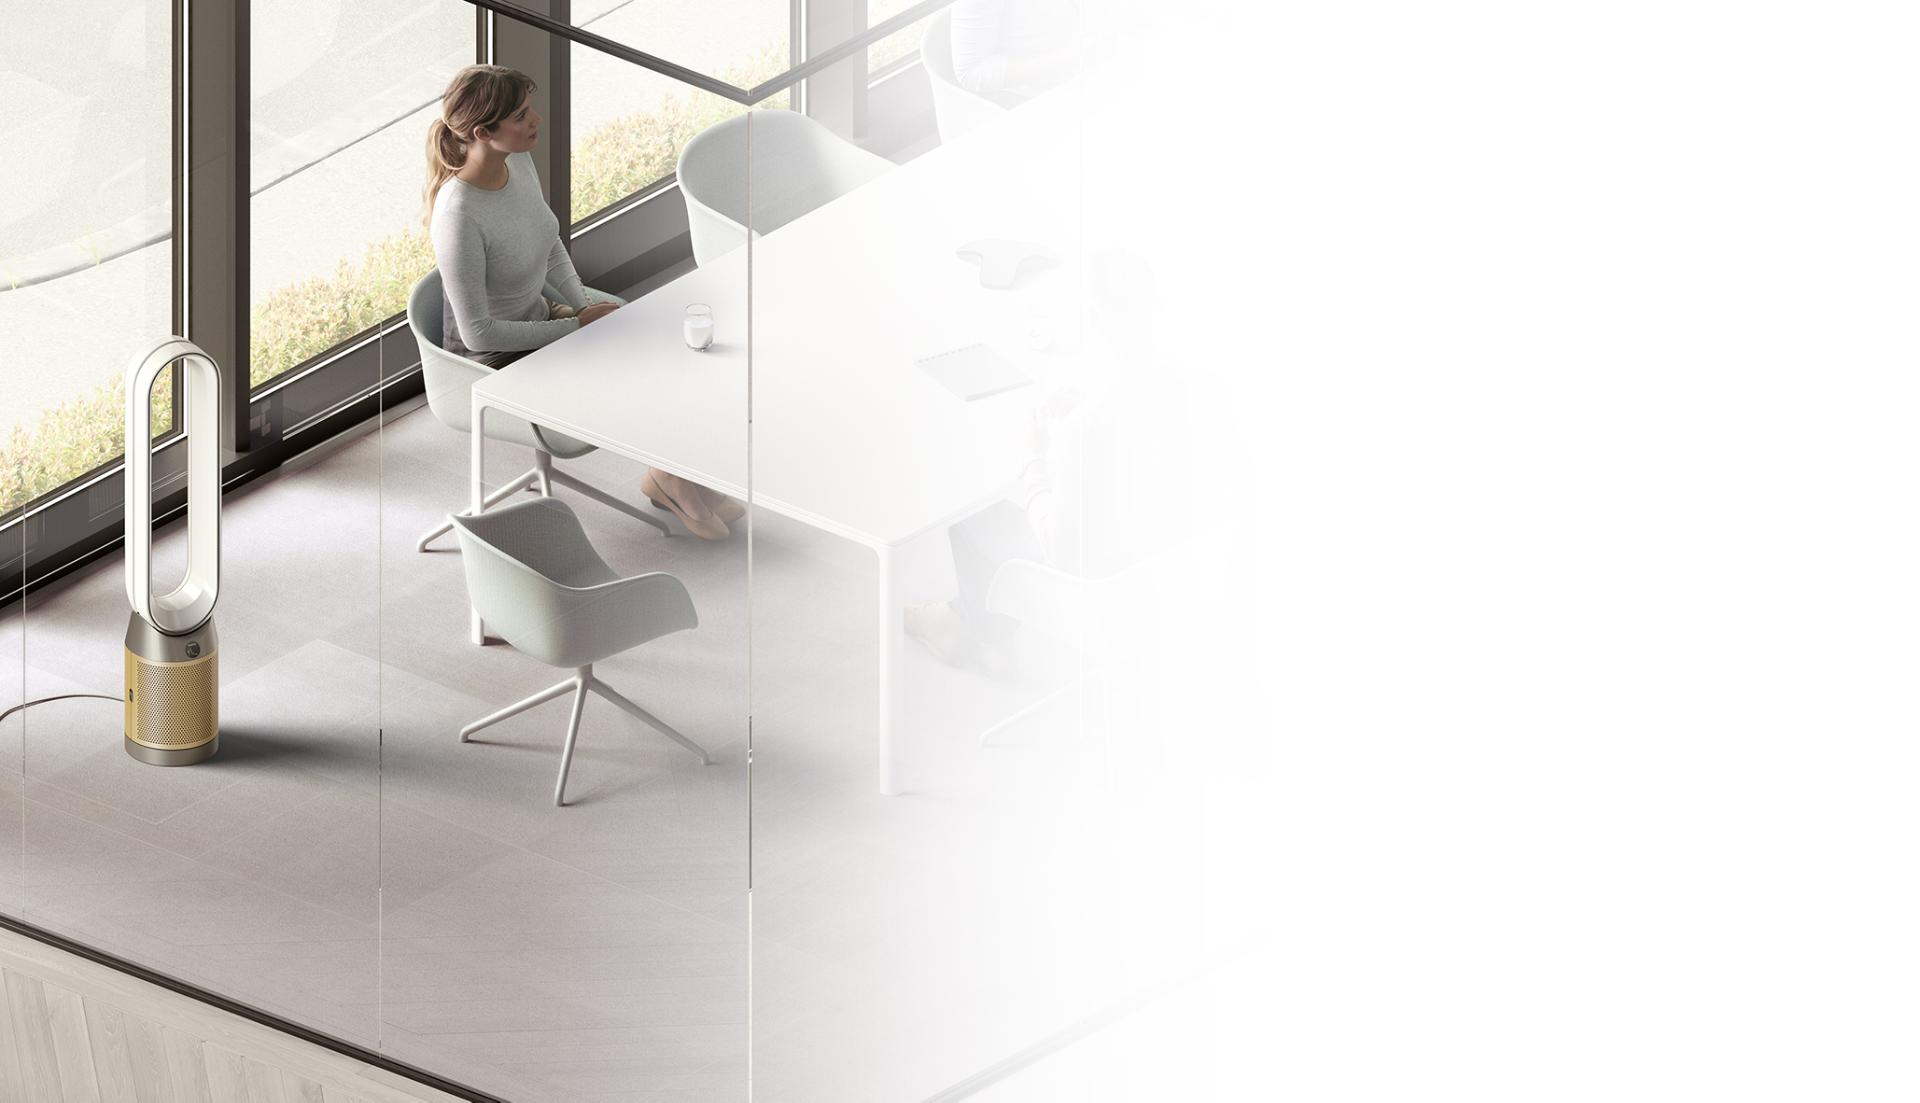 Dyson purifier sitting in corner of office space as meeting takes place